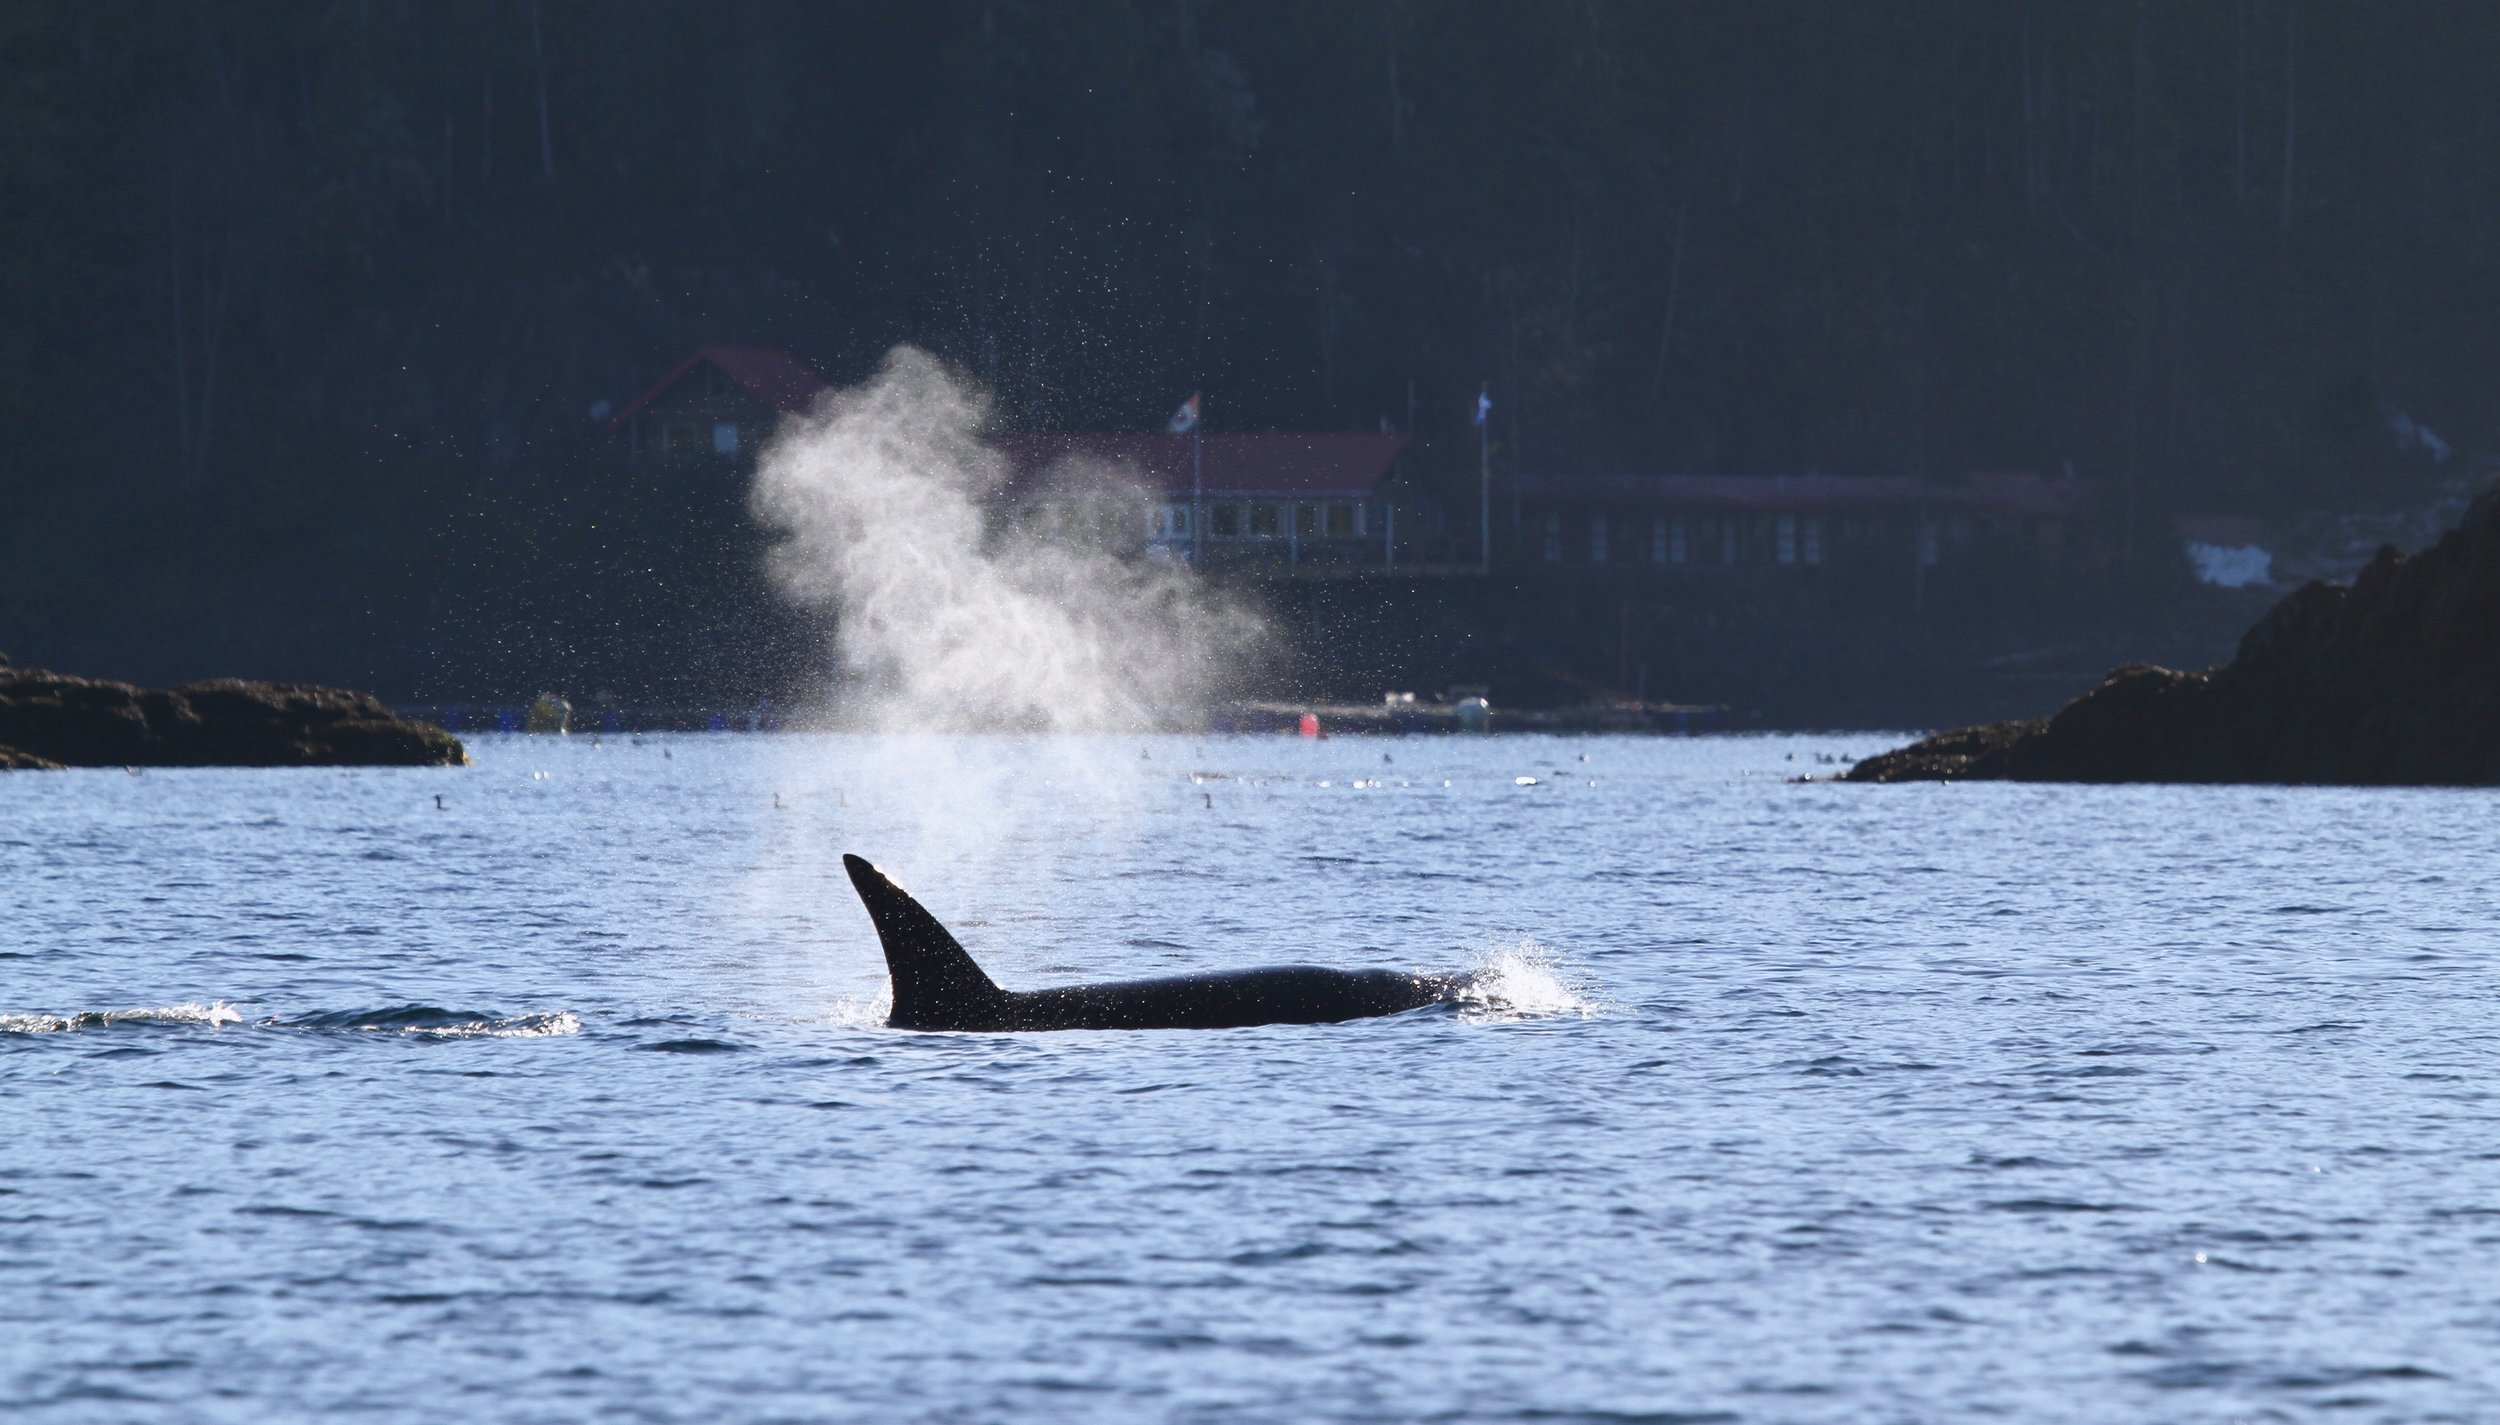 View of T60 Transient Orca passing in front of entrance to Double Bay with the facility in the back ground. Photo by Matchu.